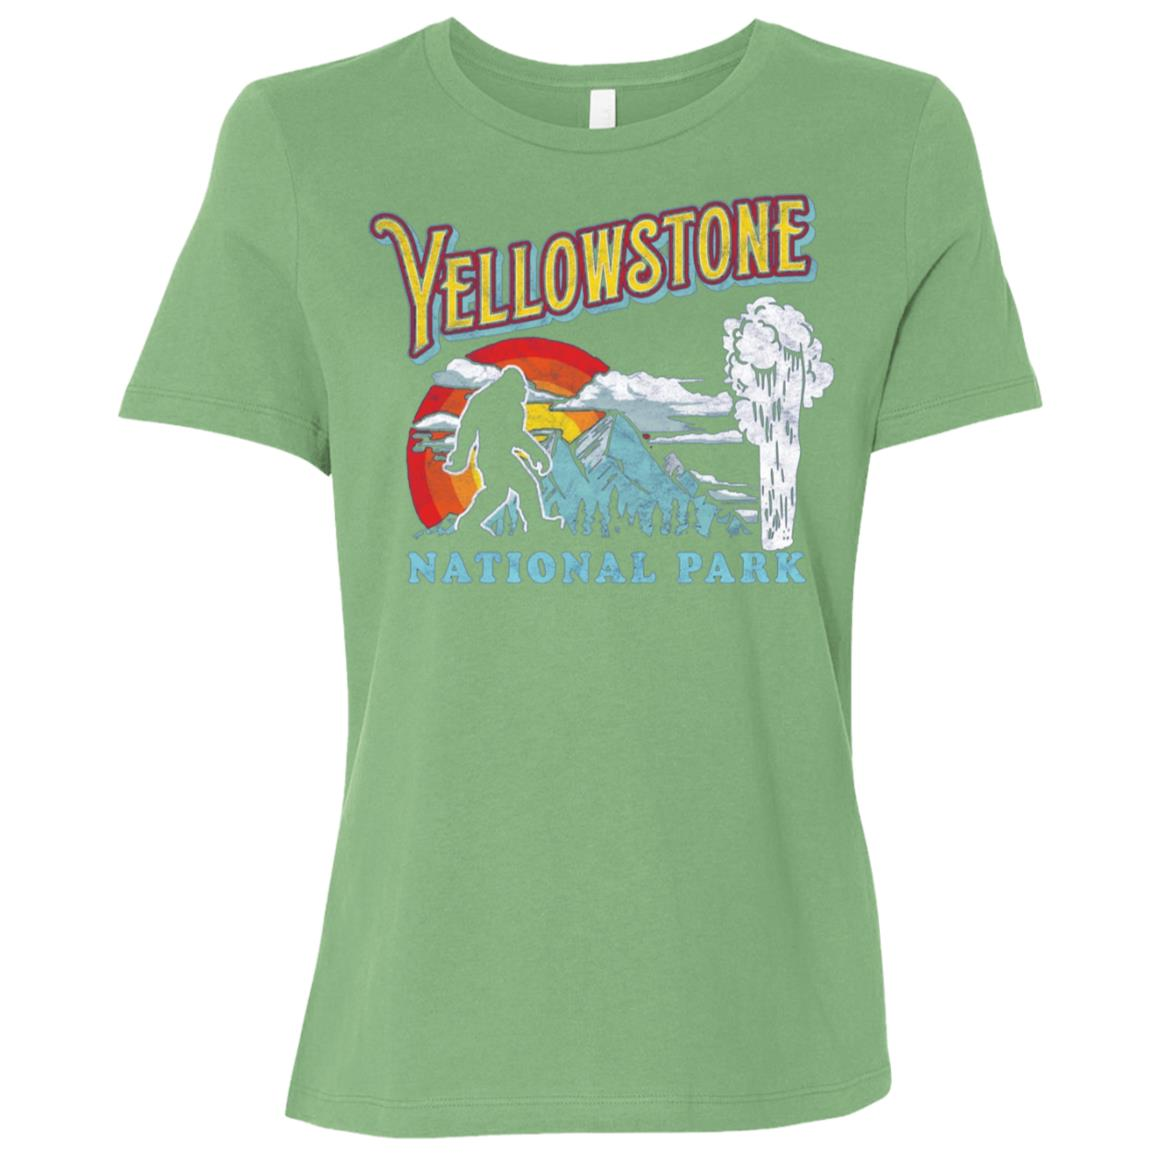 Yellowstone Bigfoot National Park Geyser Women Short Sleeve T-Shirt